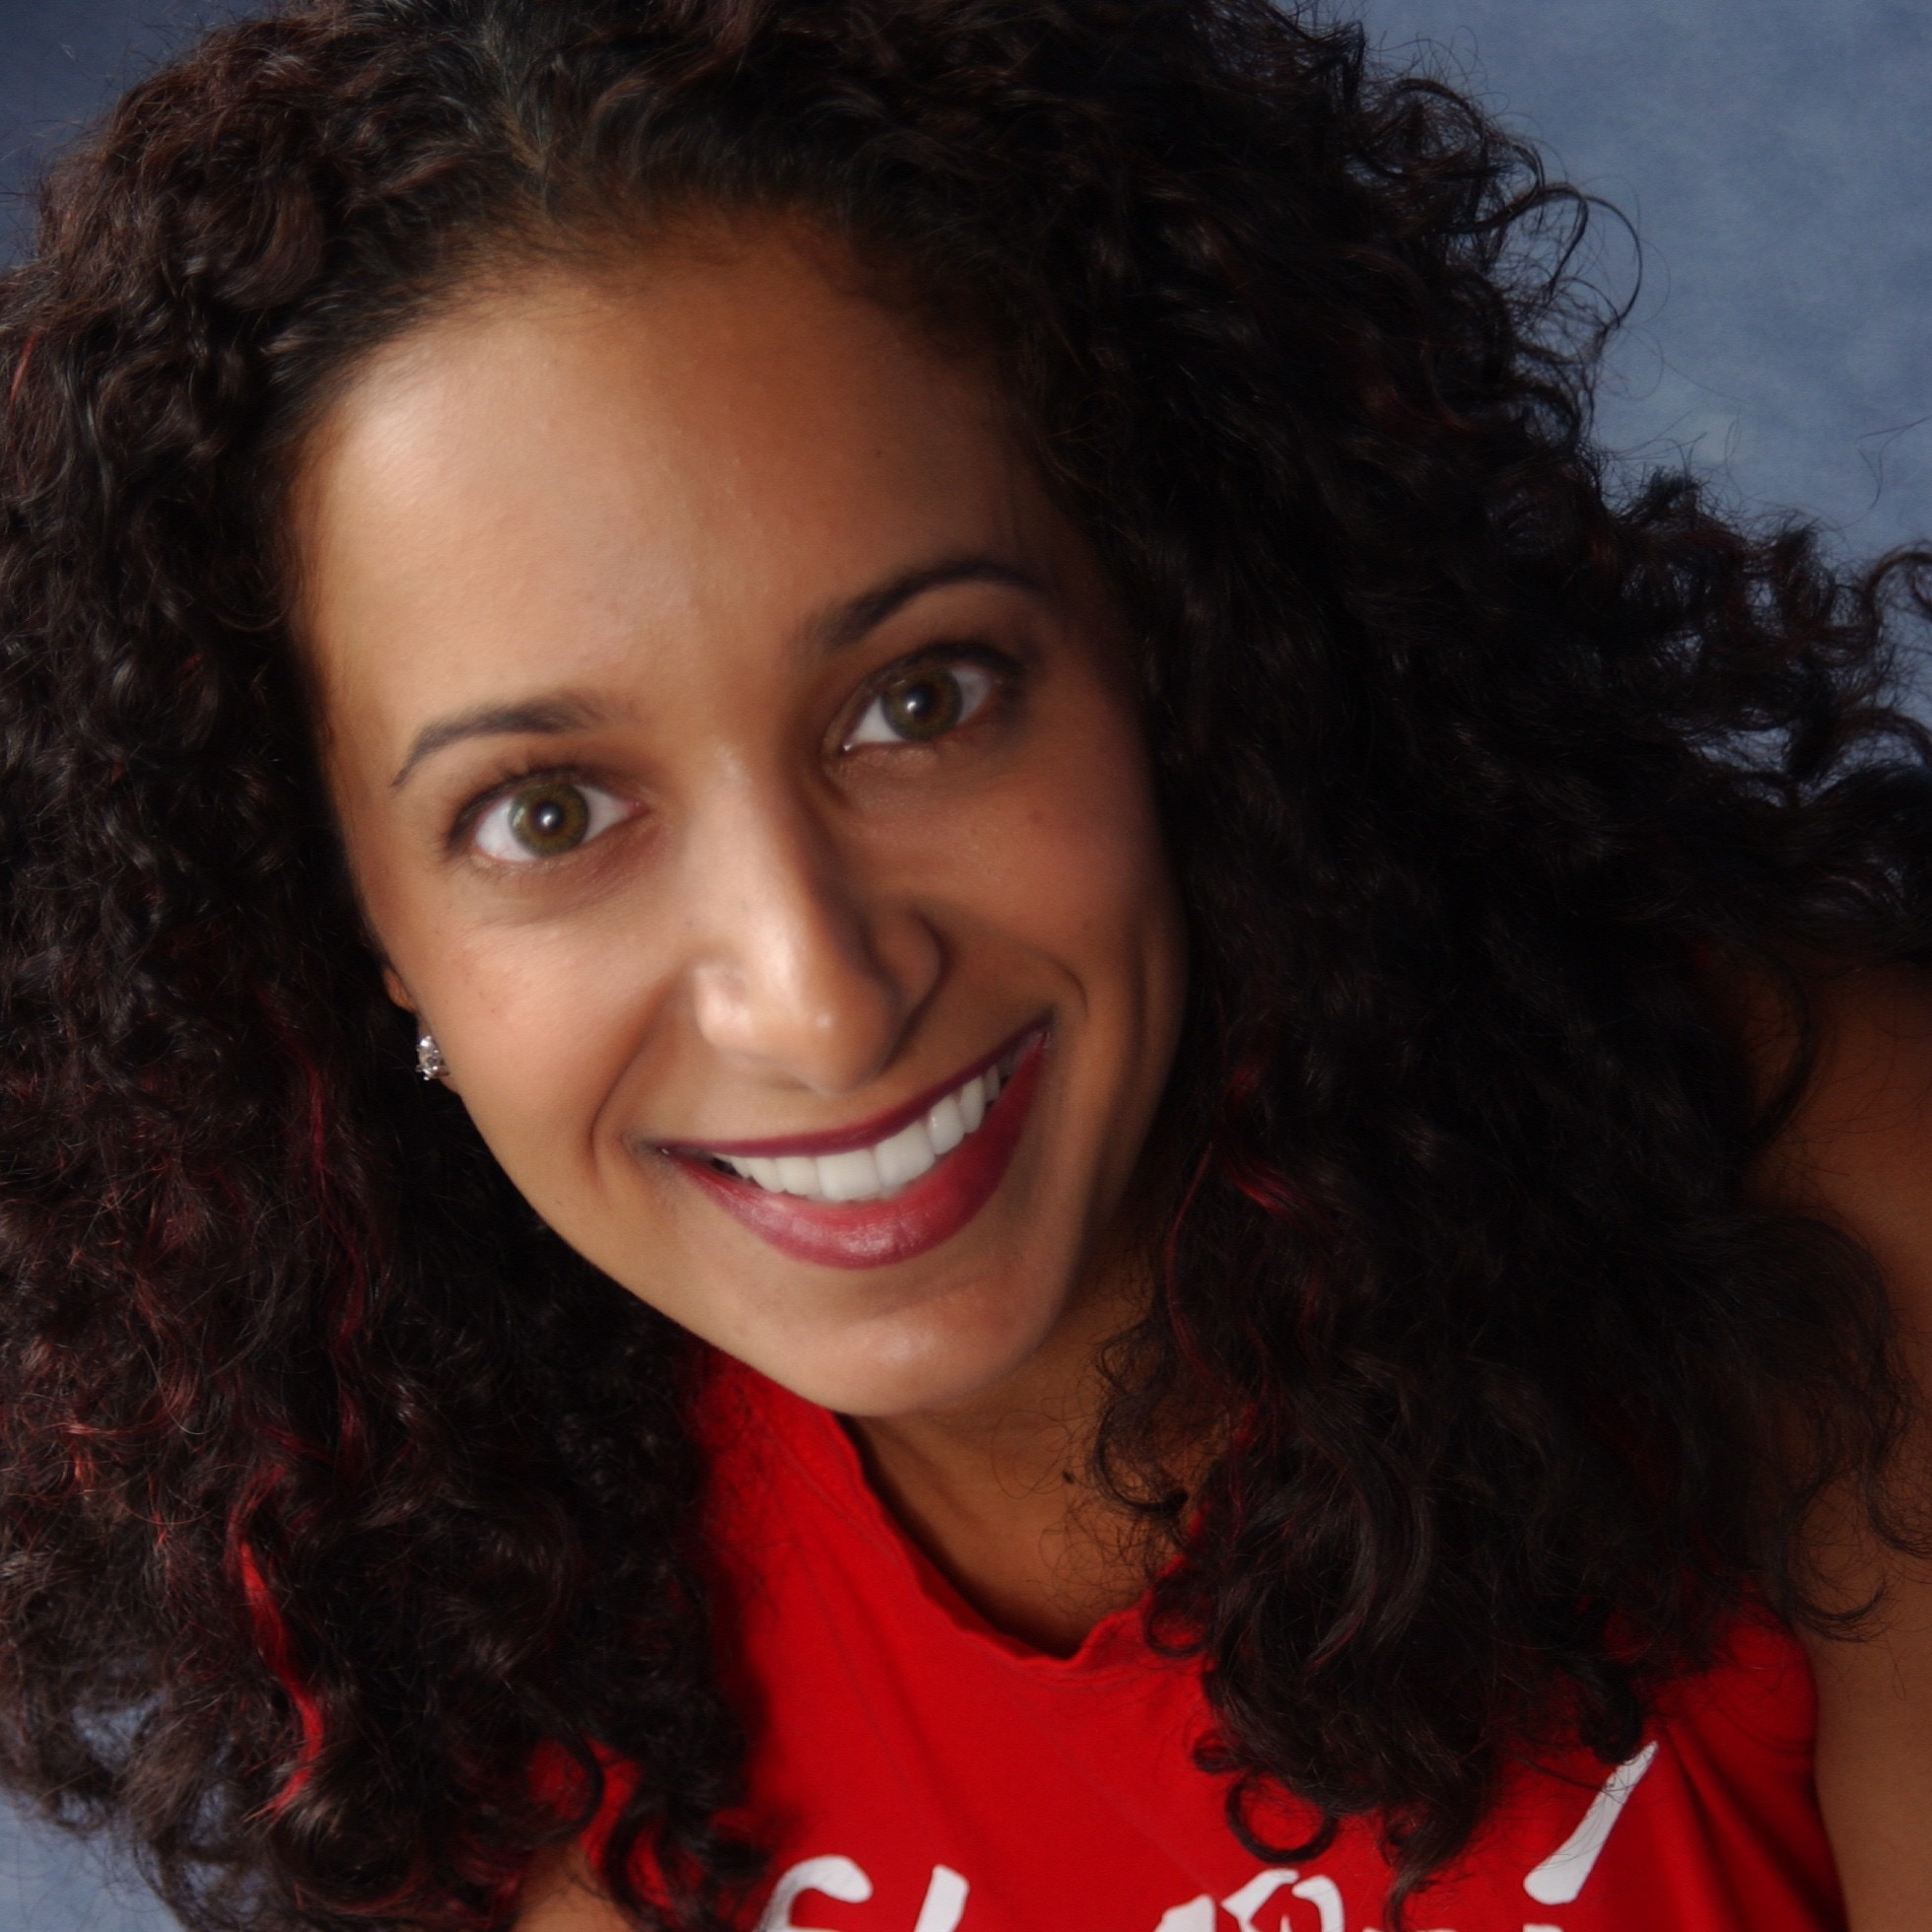 Oreet    Ep. #78   Don't fit the  norm?  Lost your dance  mojo?  Oreet transitioned from a Contemp dancer to a fitness & Belly Dance  entrepreneur . From NBC, ABC, CBS, and CNN - she is sharing her love of dance with the world.